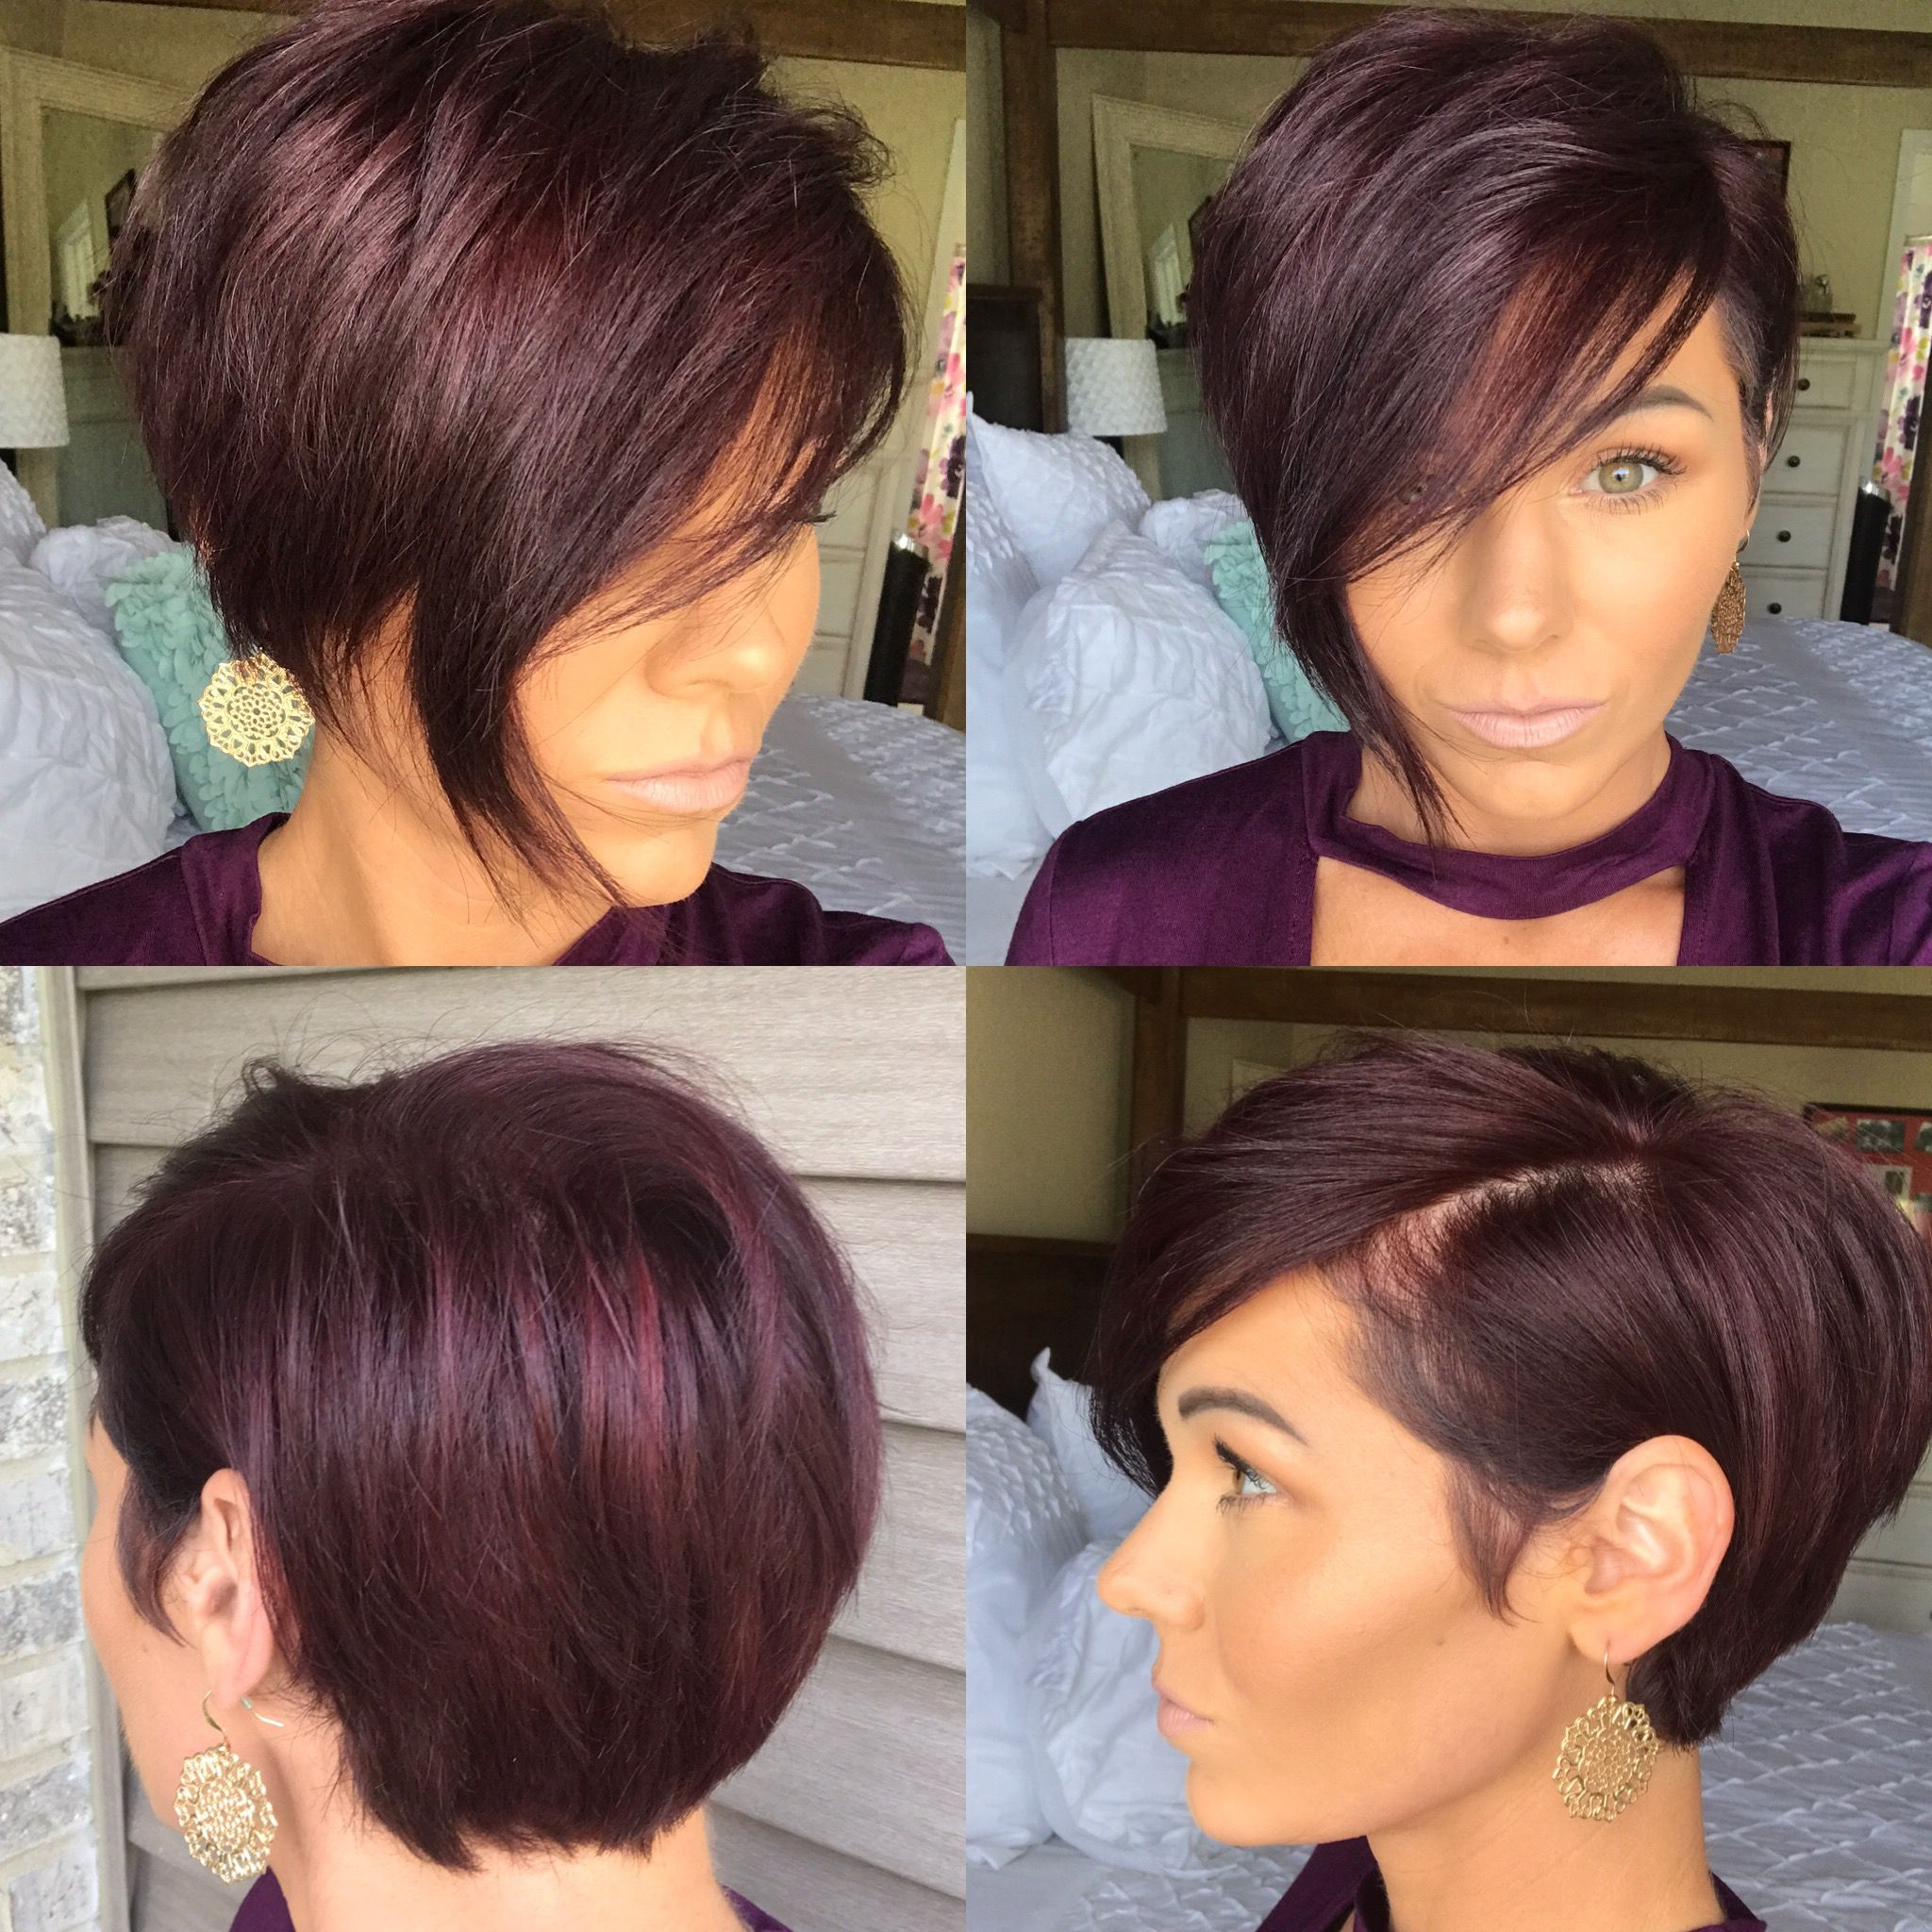 Adorable Asymmetrical Hairstyle | Do The 'do In 2018 | Pinterest Throughout Asymmetrical Haircuts For Thick Hair (View 17 of 20)